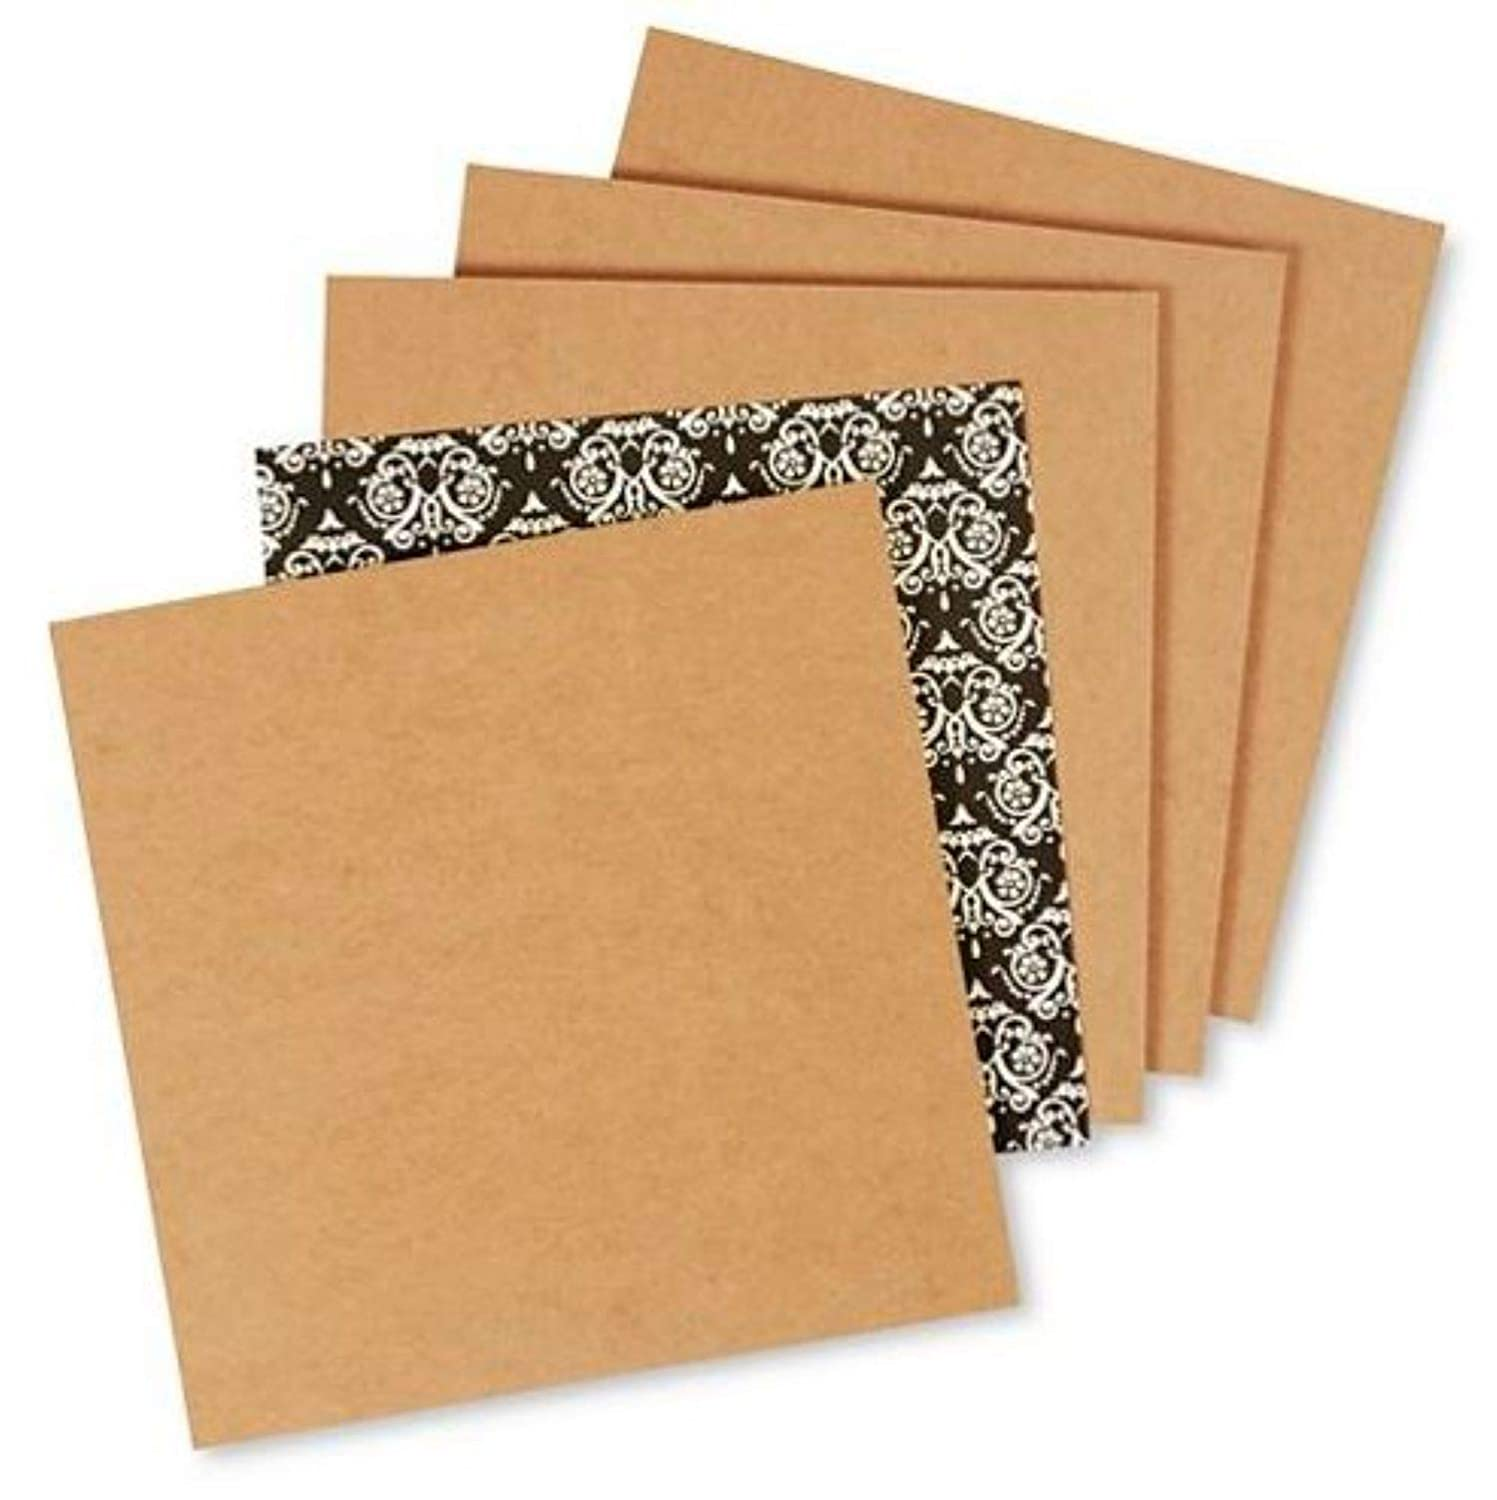 Secure Seal 12x12 Brown Chipboard Pads//Sheets 22pt Lightweight Pack of 10